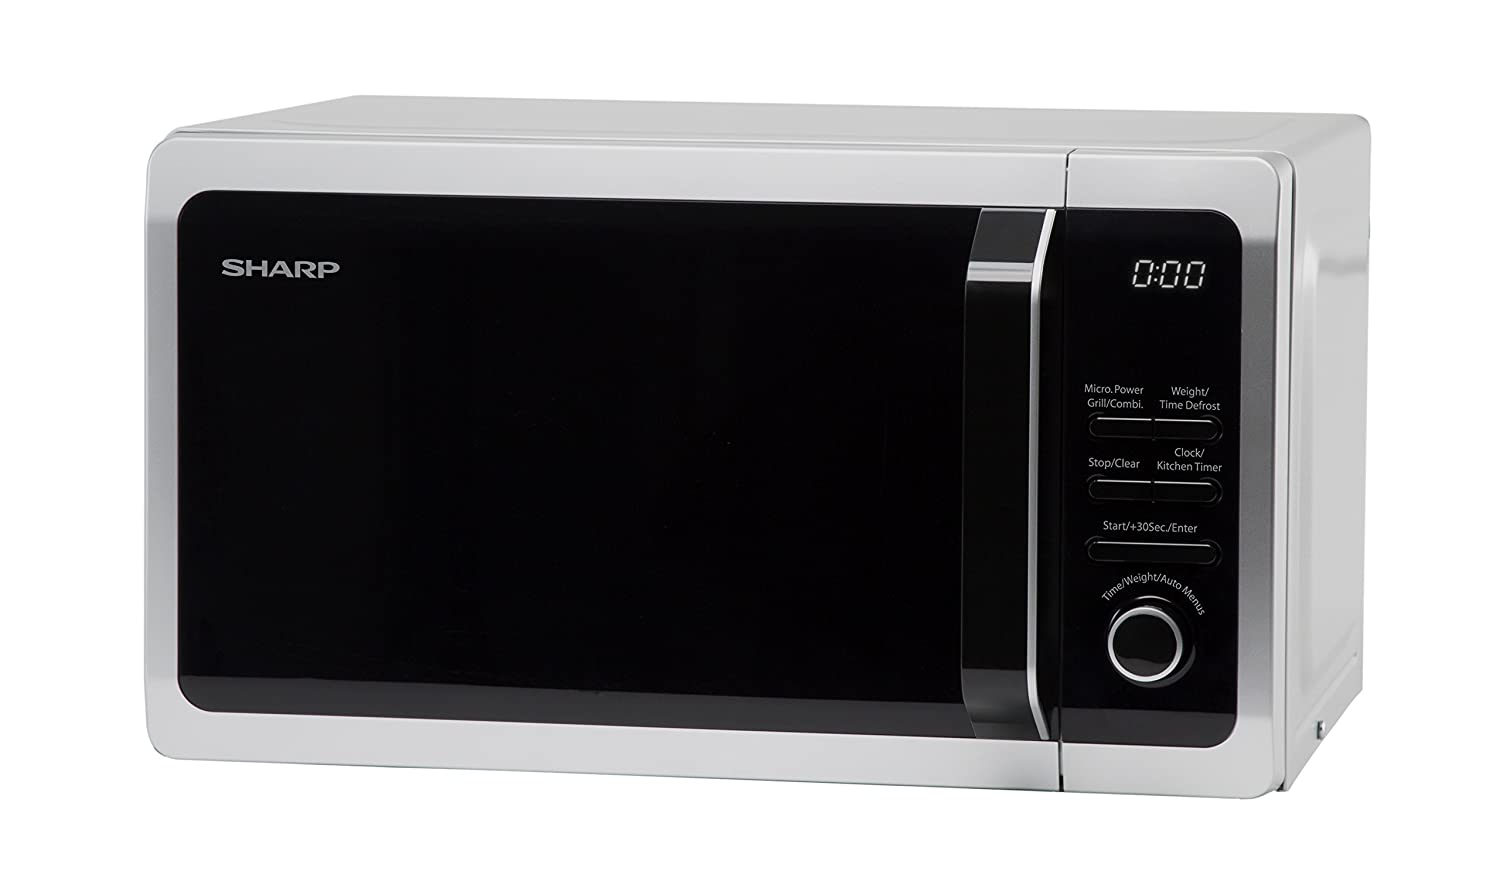 Sharp R664 Compact Grill Microwave, 20 Litre, 800 W, Black